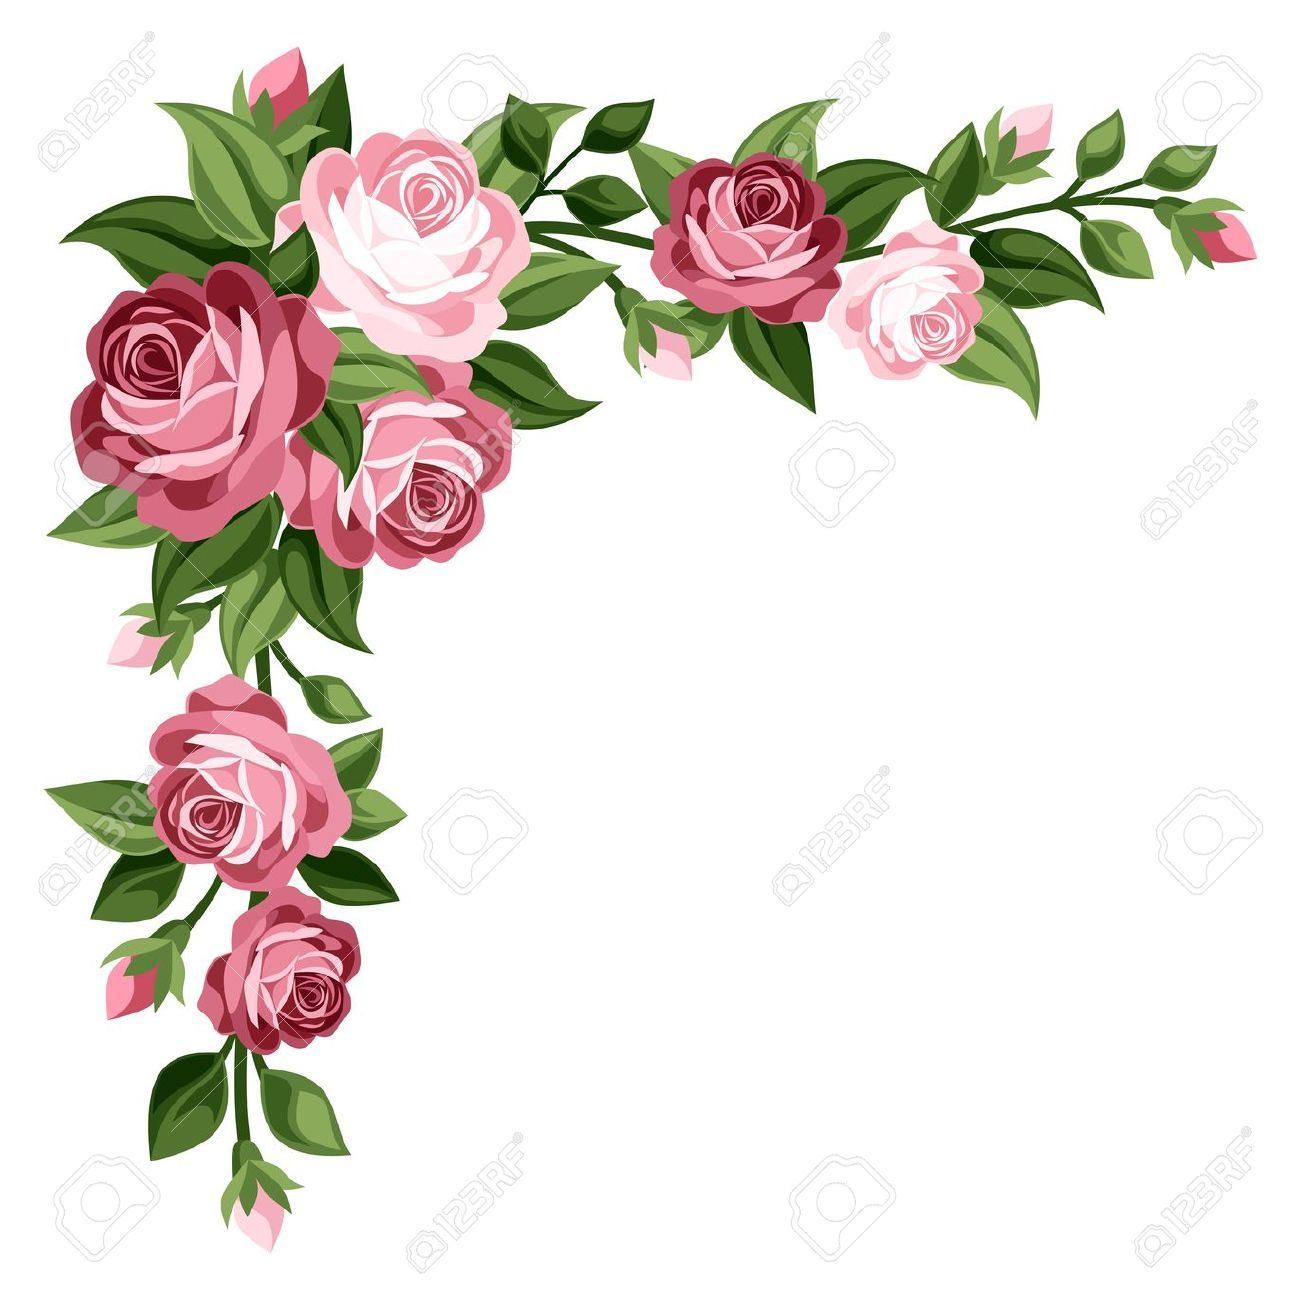 rose flower border clipart tags